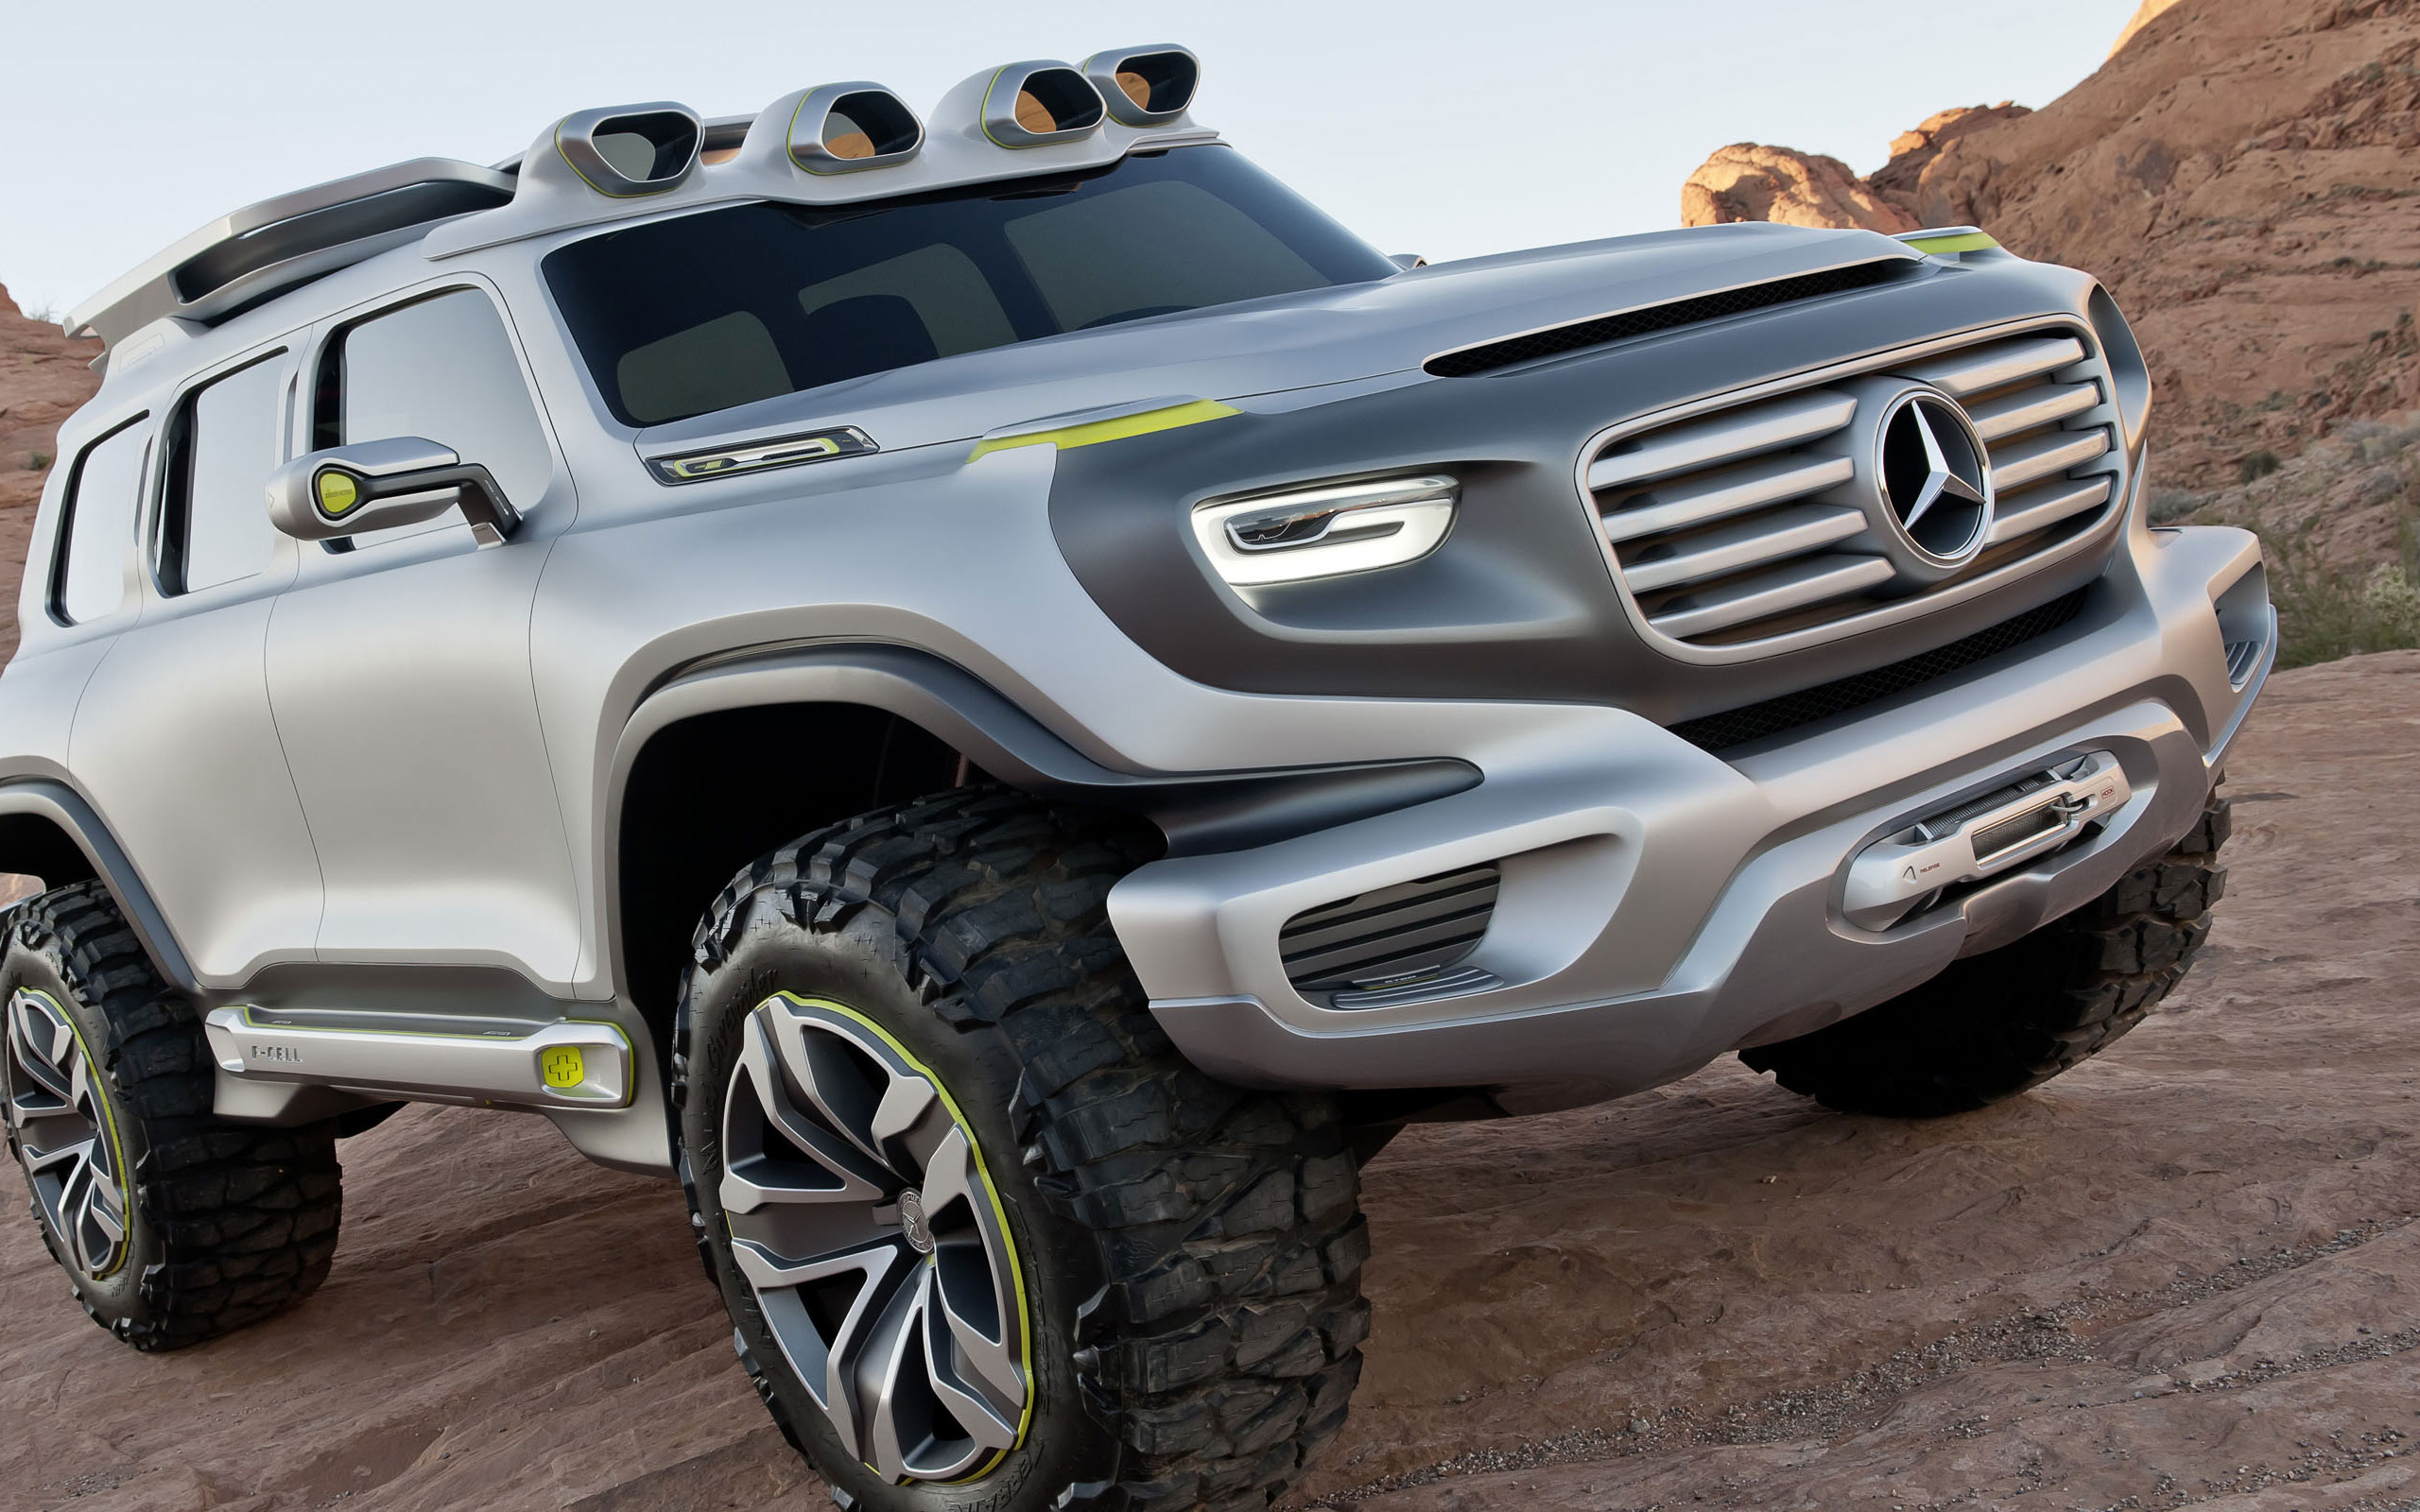 g-class environmentally friendly suv - future vehicle | mercedes-benz